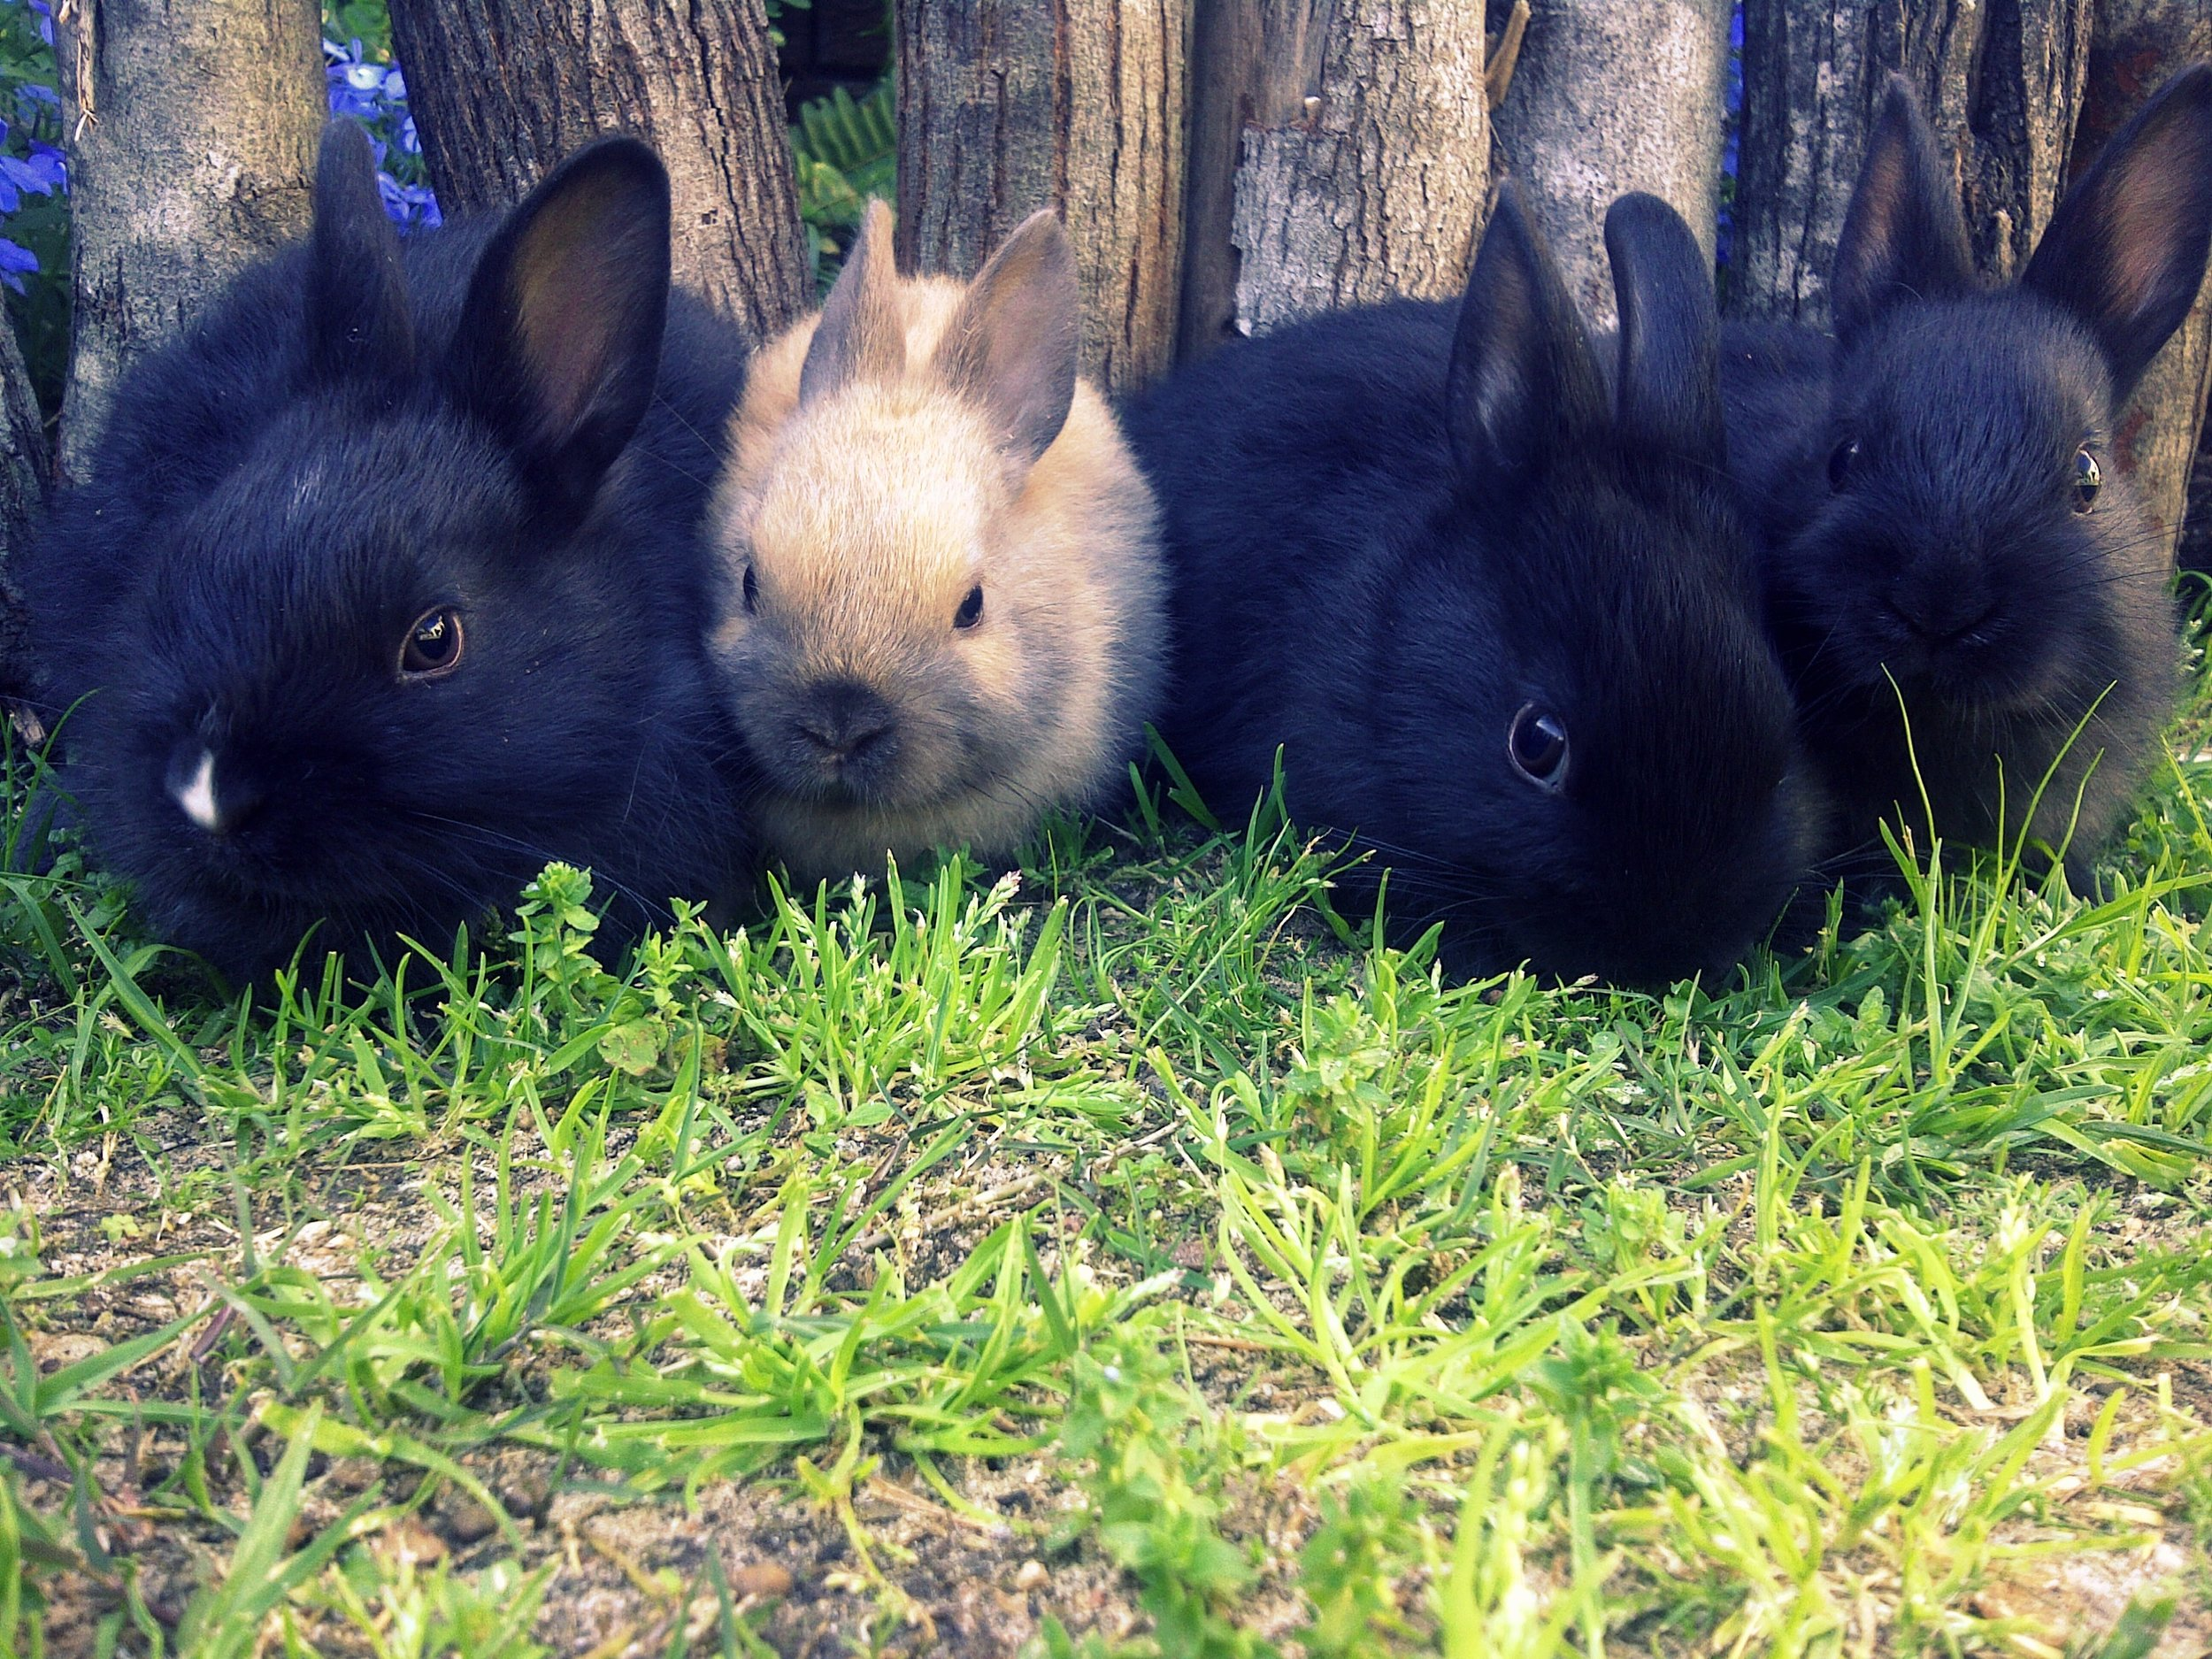 Will Human Correctly Pick Out from the Lineup the Bunny Who Got into the Garden?